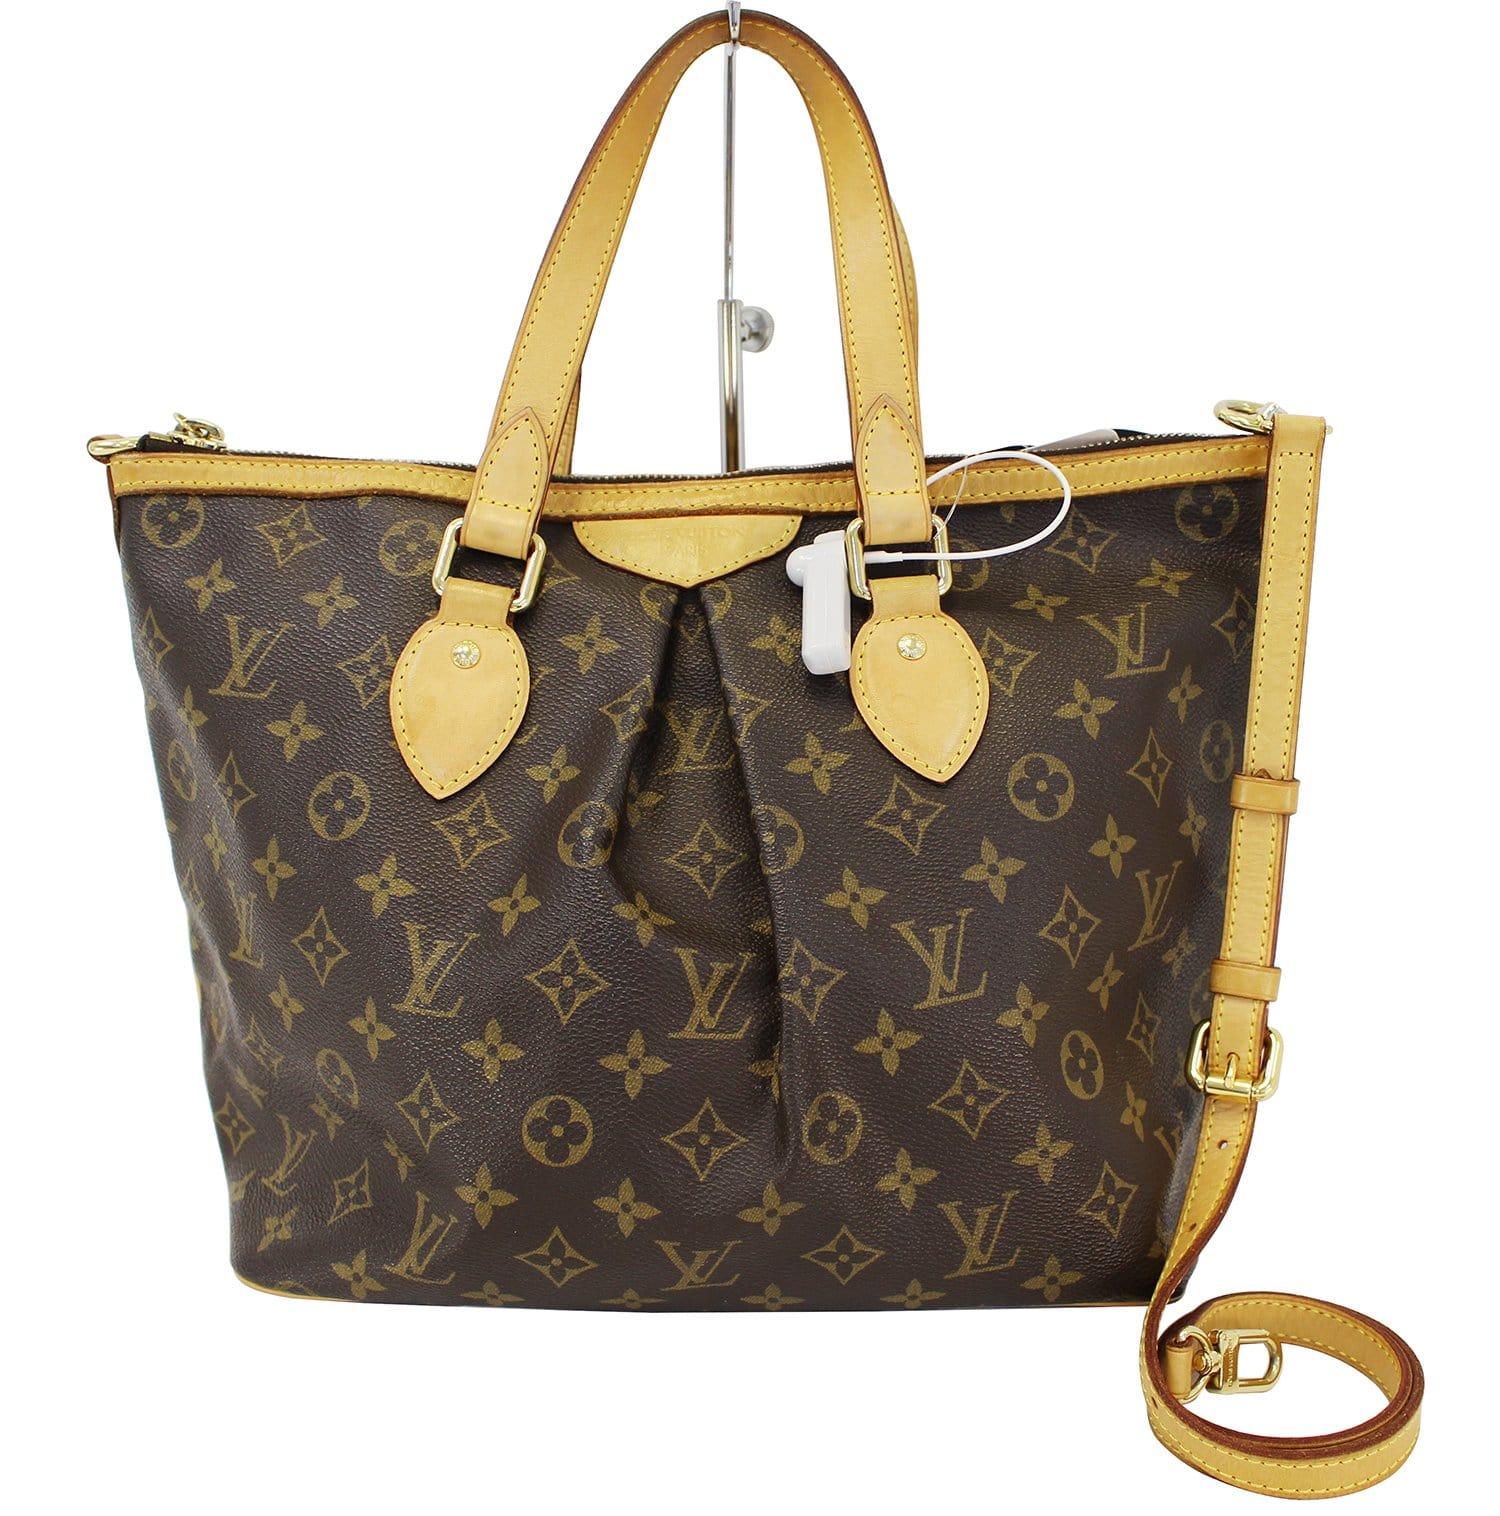 LOUIS VUITTON Monogram Palermo PM Tote Shoulder Bag fe99d59377b44